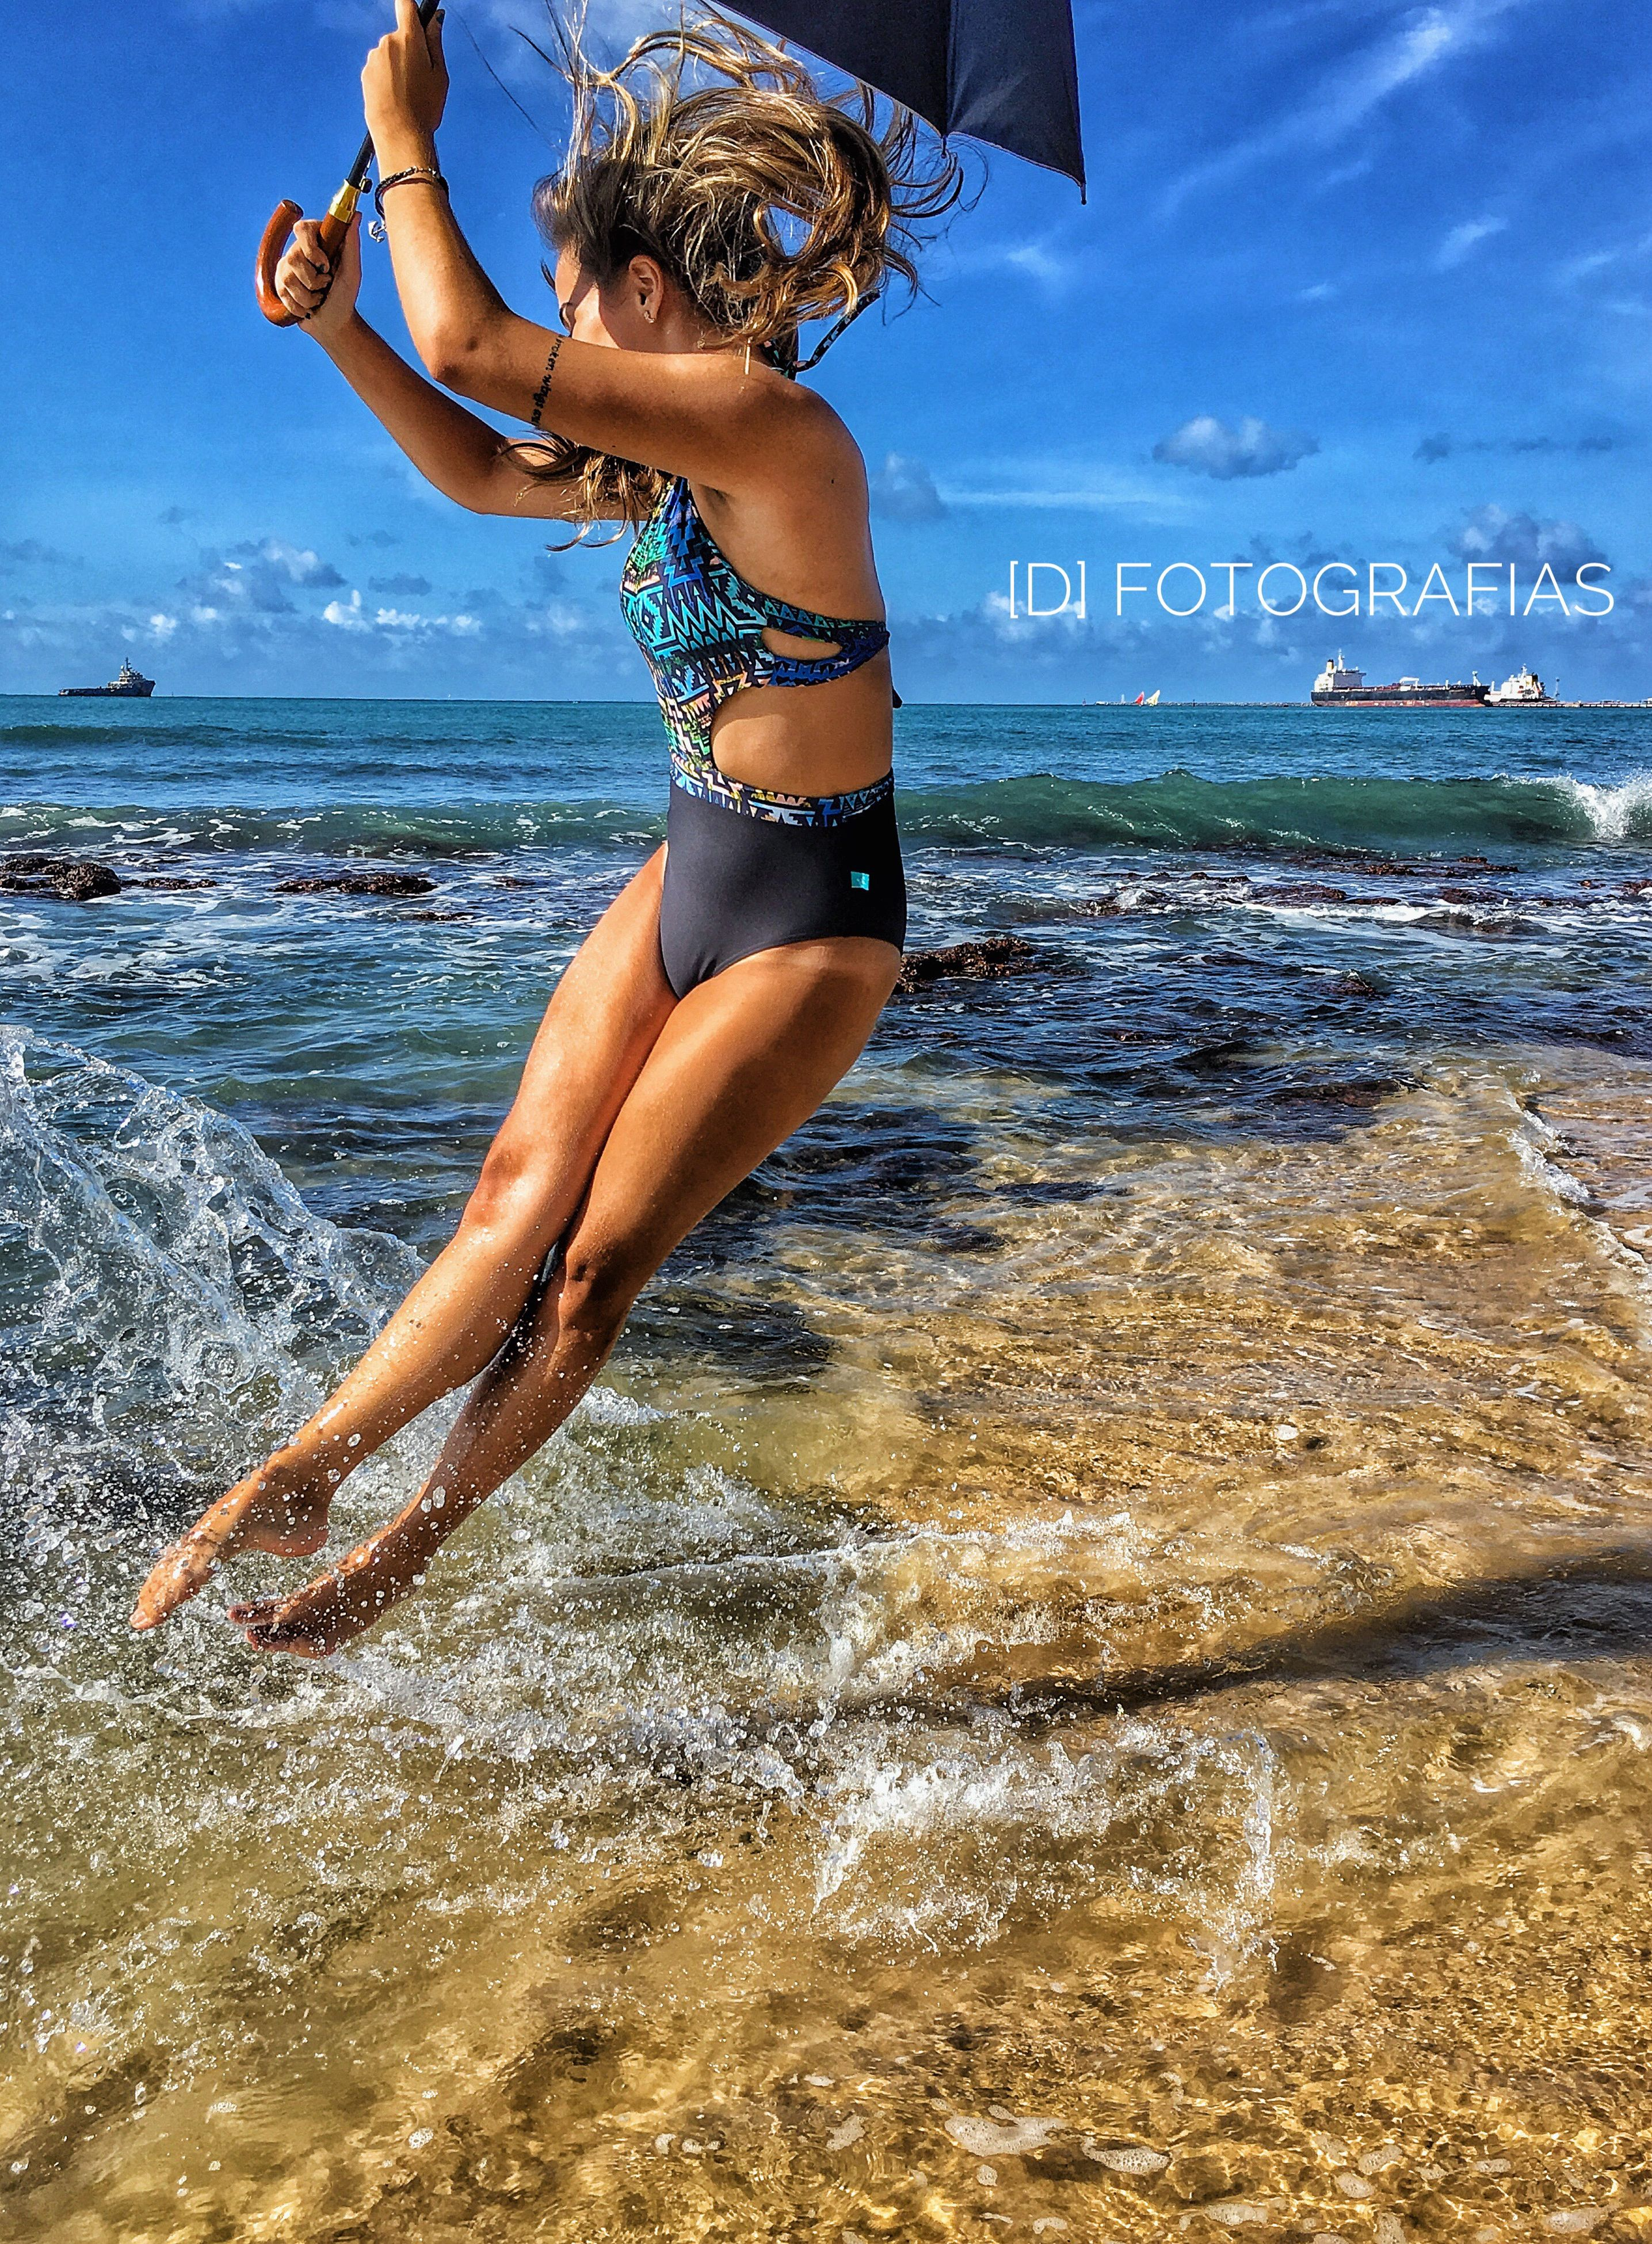 sea, real people, water, one person, lifestyles, beach, leisure activity, full length, sky, nature, bikini, horizon over water, beauty in nature, day, outdoors, young women, beautiful woman, young adult, scenics